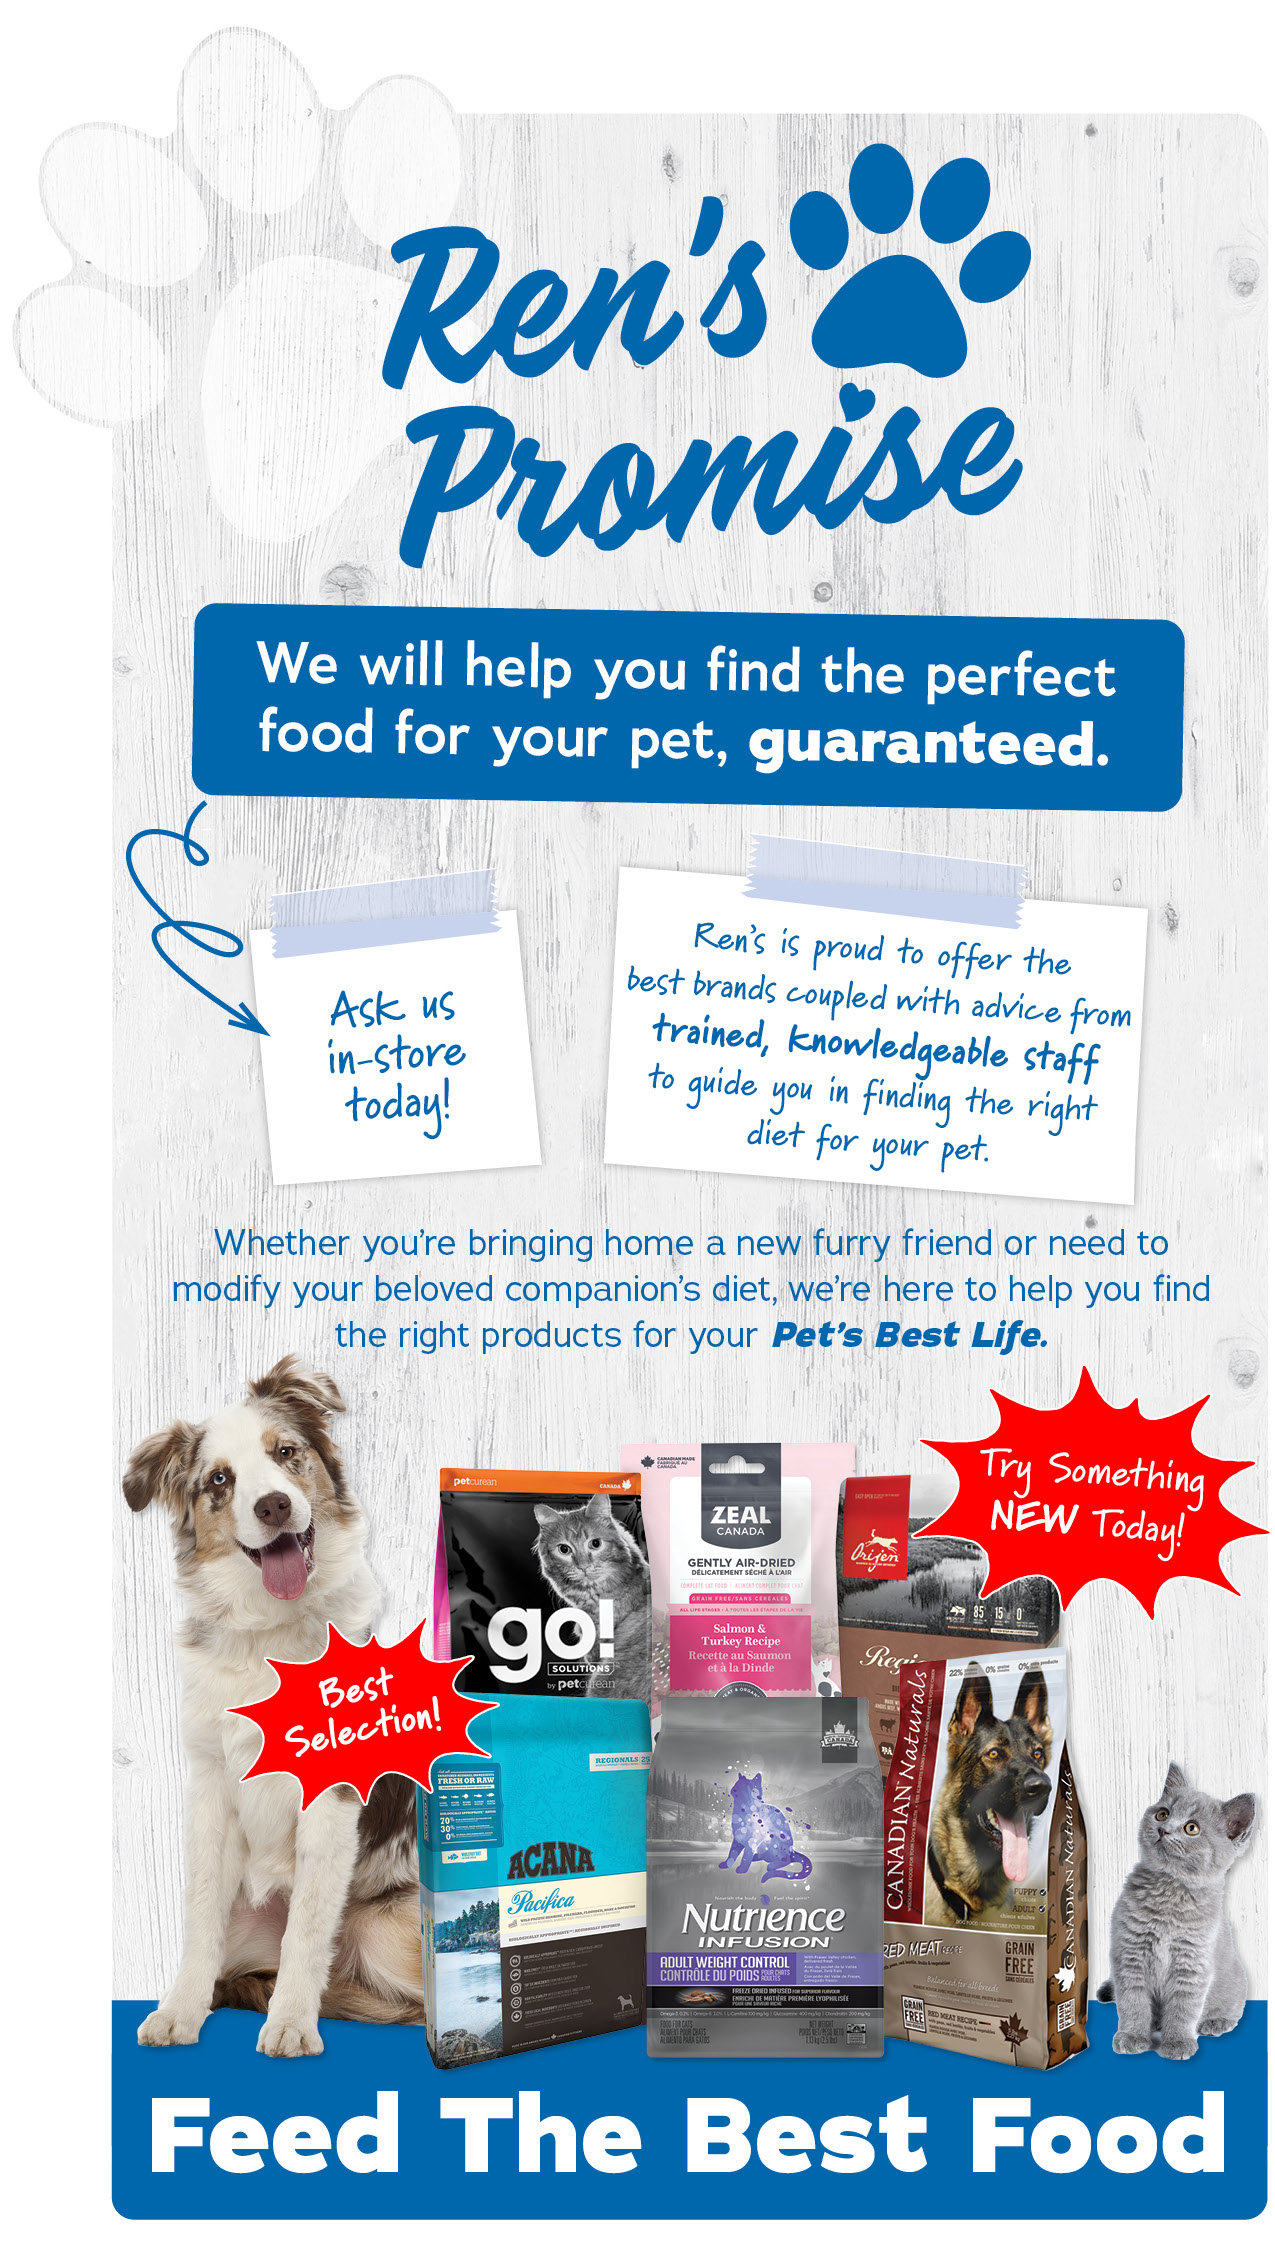 Ren's Promise We will help you find the perfect food for your pet, guaranteed.